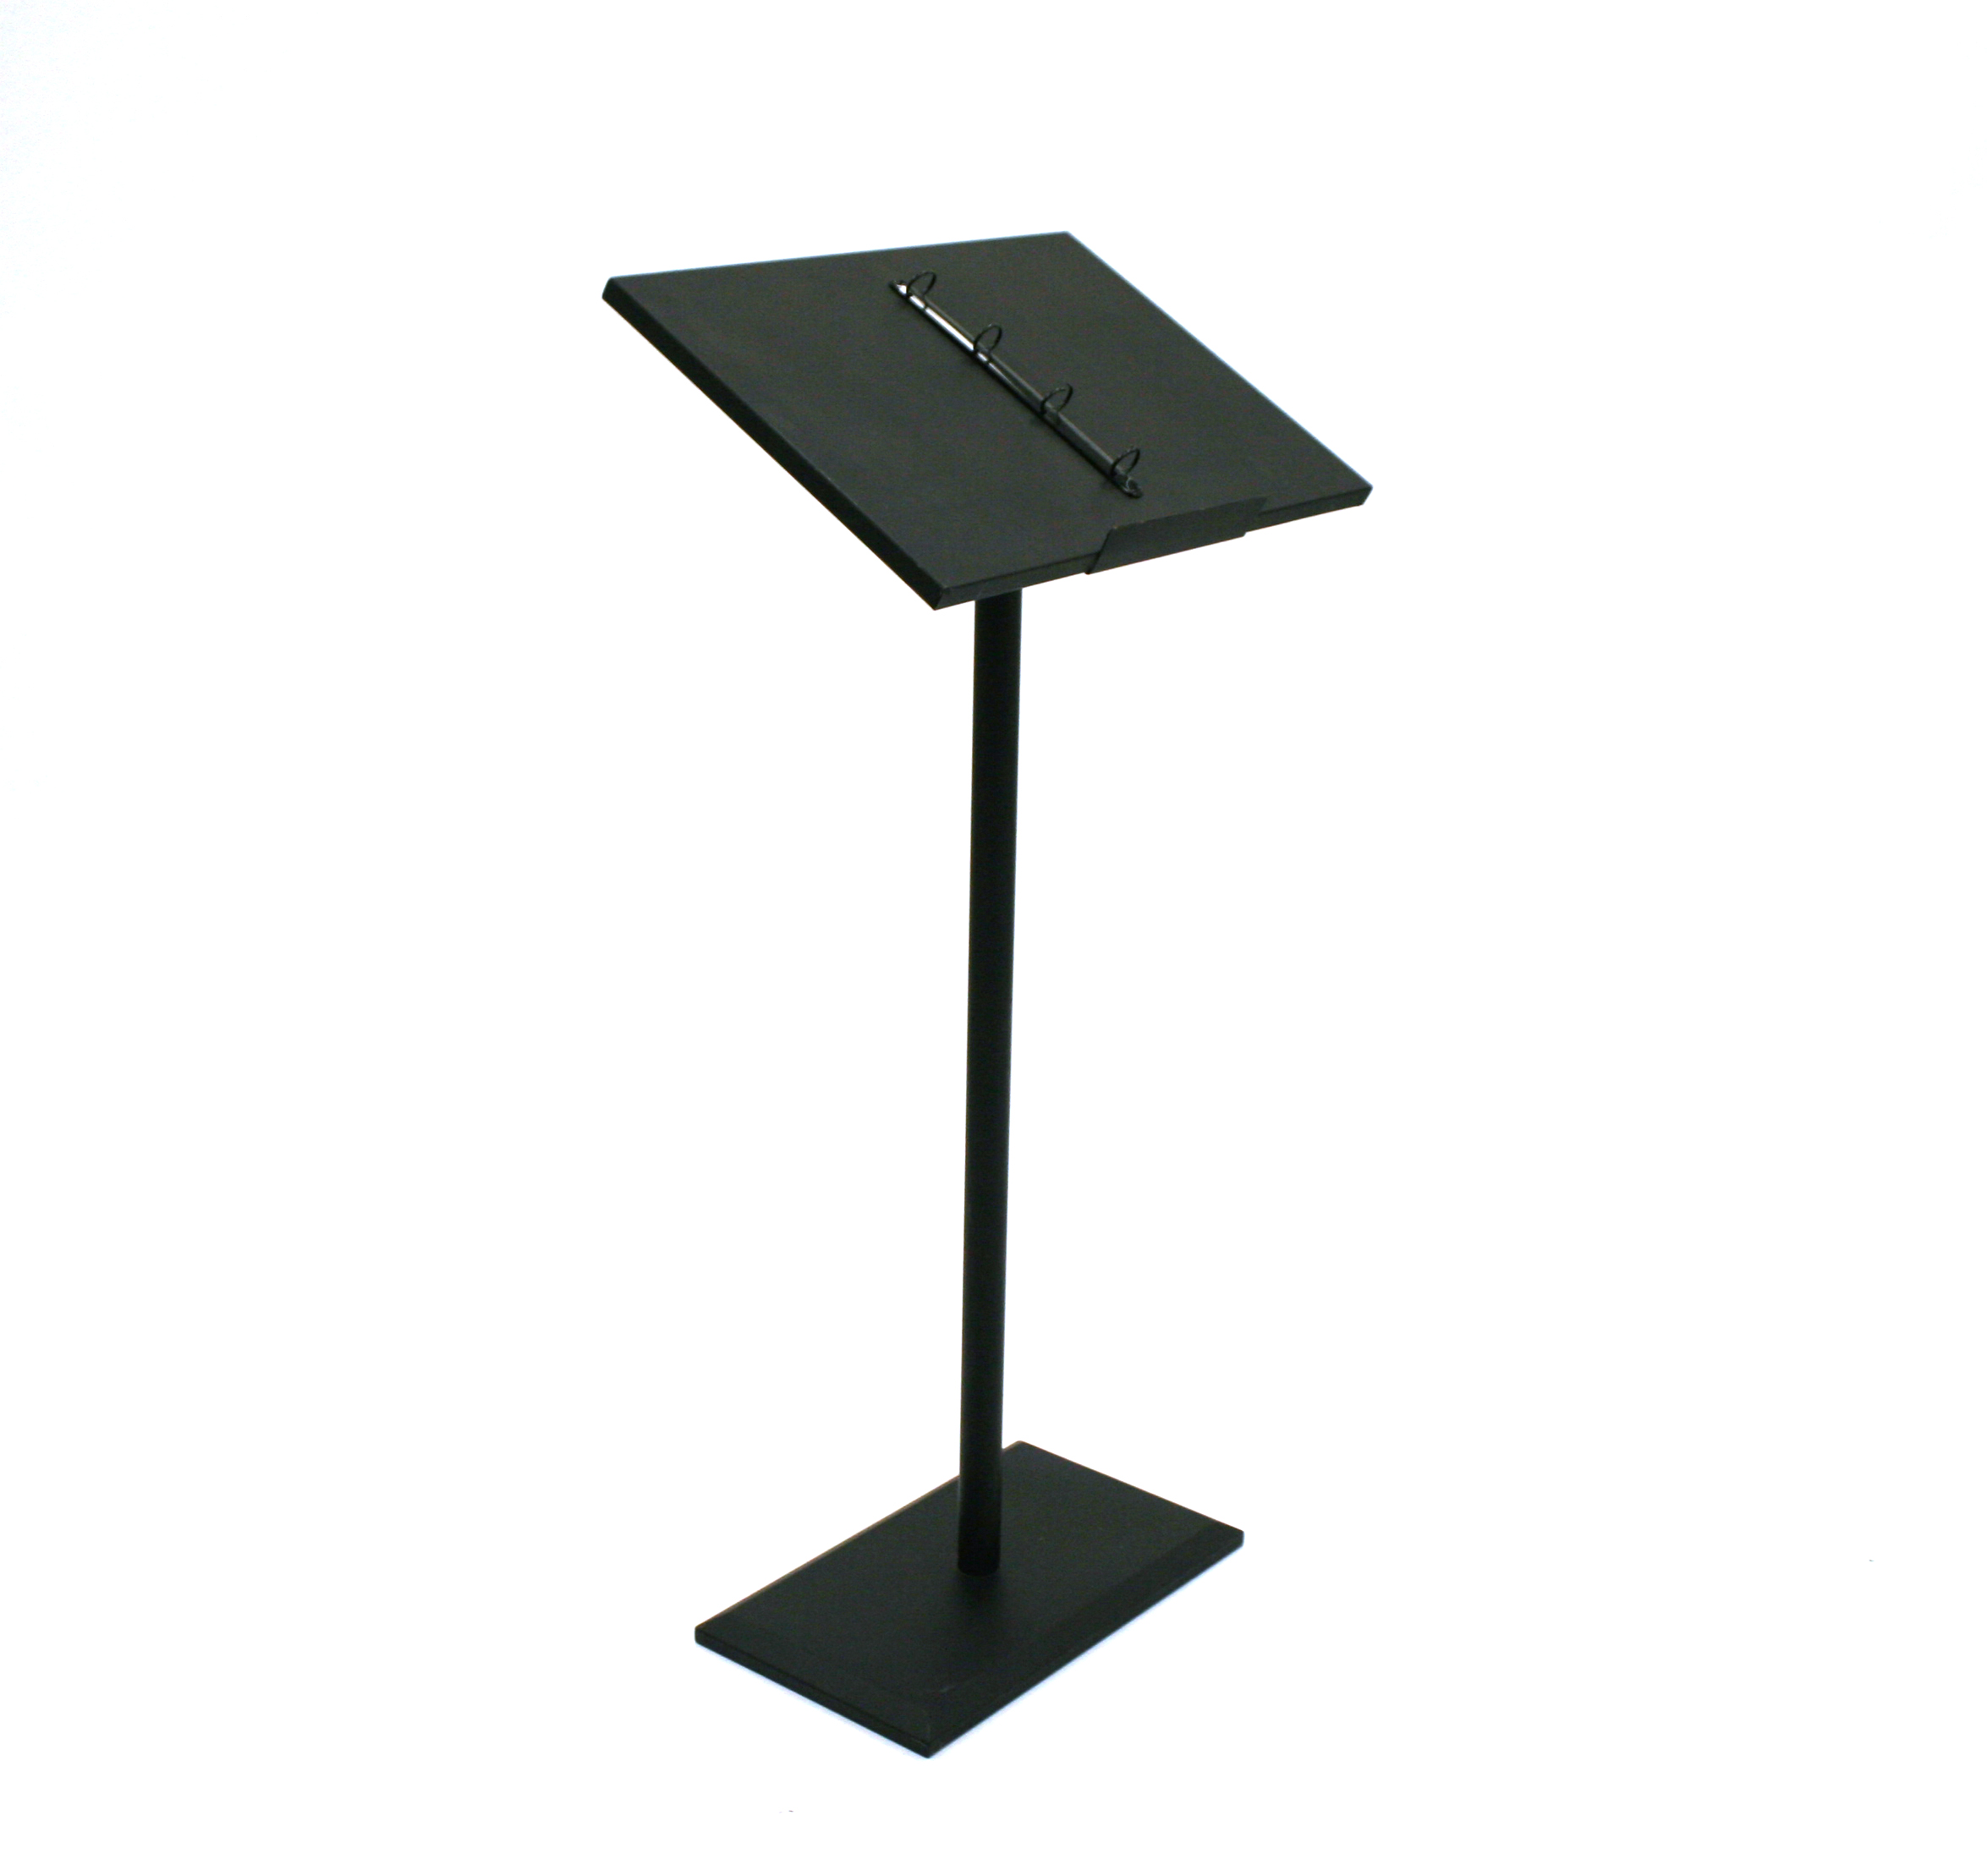 Black powder coated carbon steel lectern with attached ring binders - BE Event Hire